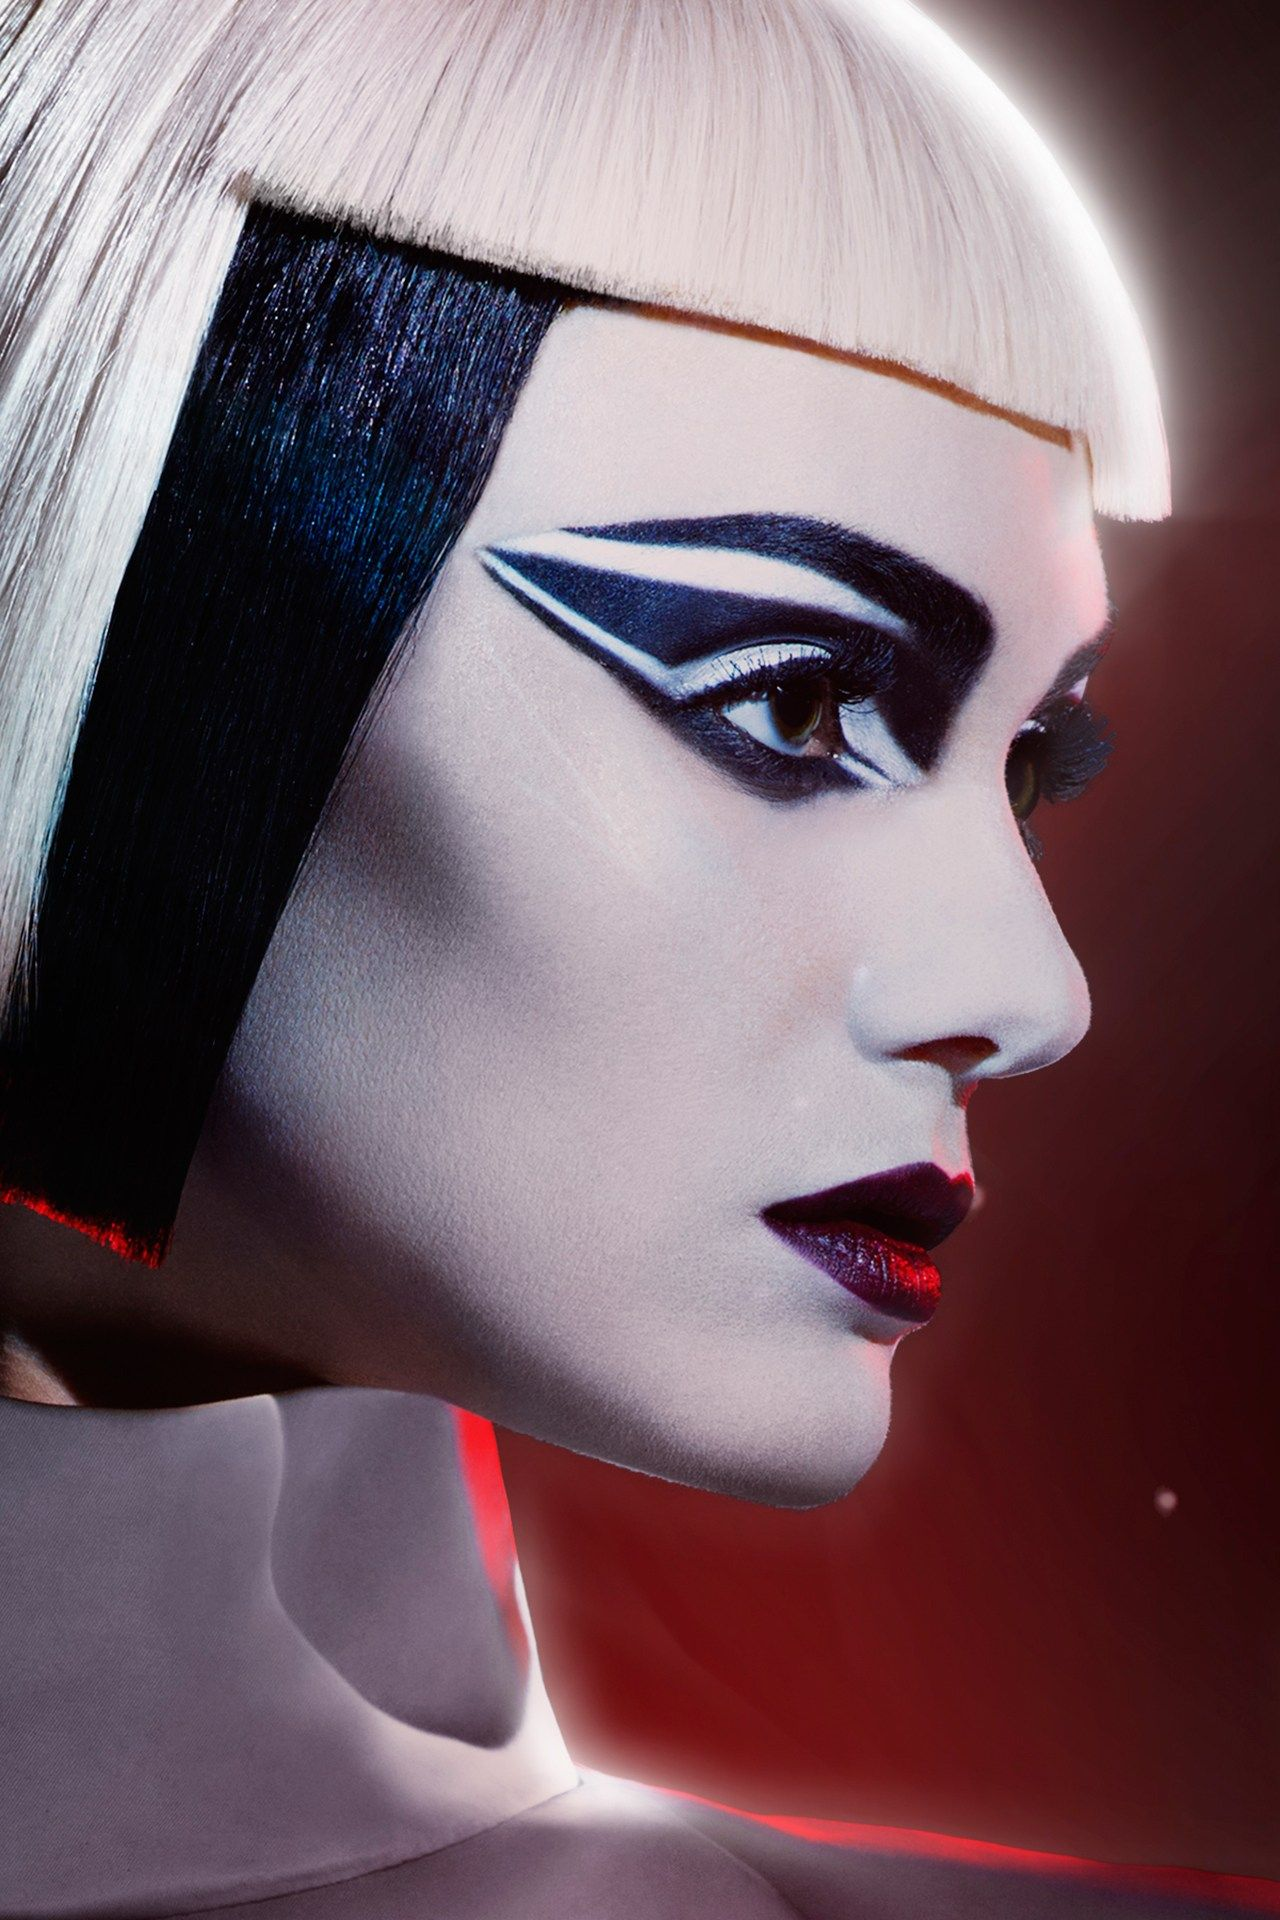 Max Factor Teams Up With Star Wars on a Cool Makeup Line